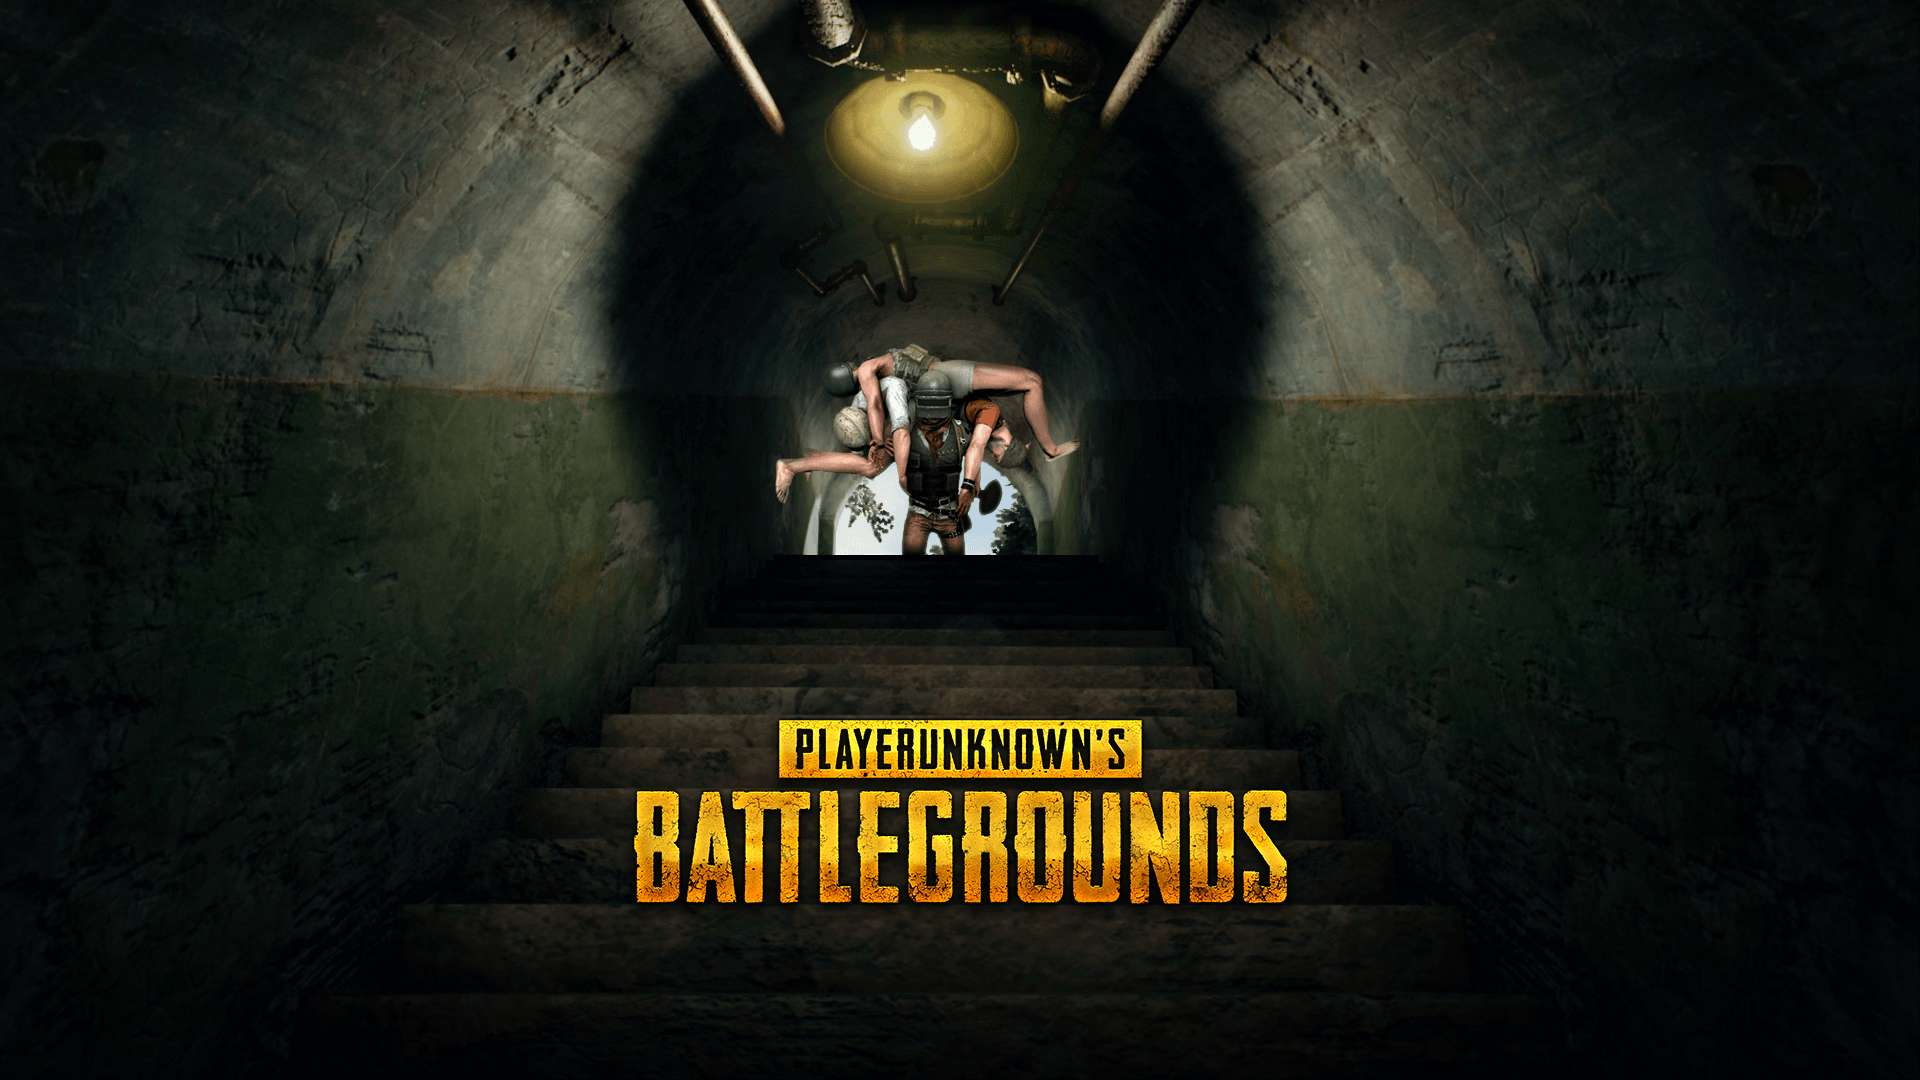 Pubg Wallpaper 4k Mobile: Pubg 4k Wallpaper For Mobile Download The Best HD Wallpaper